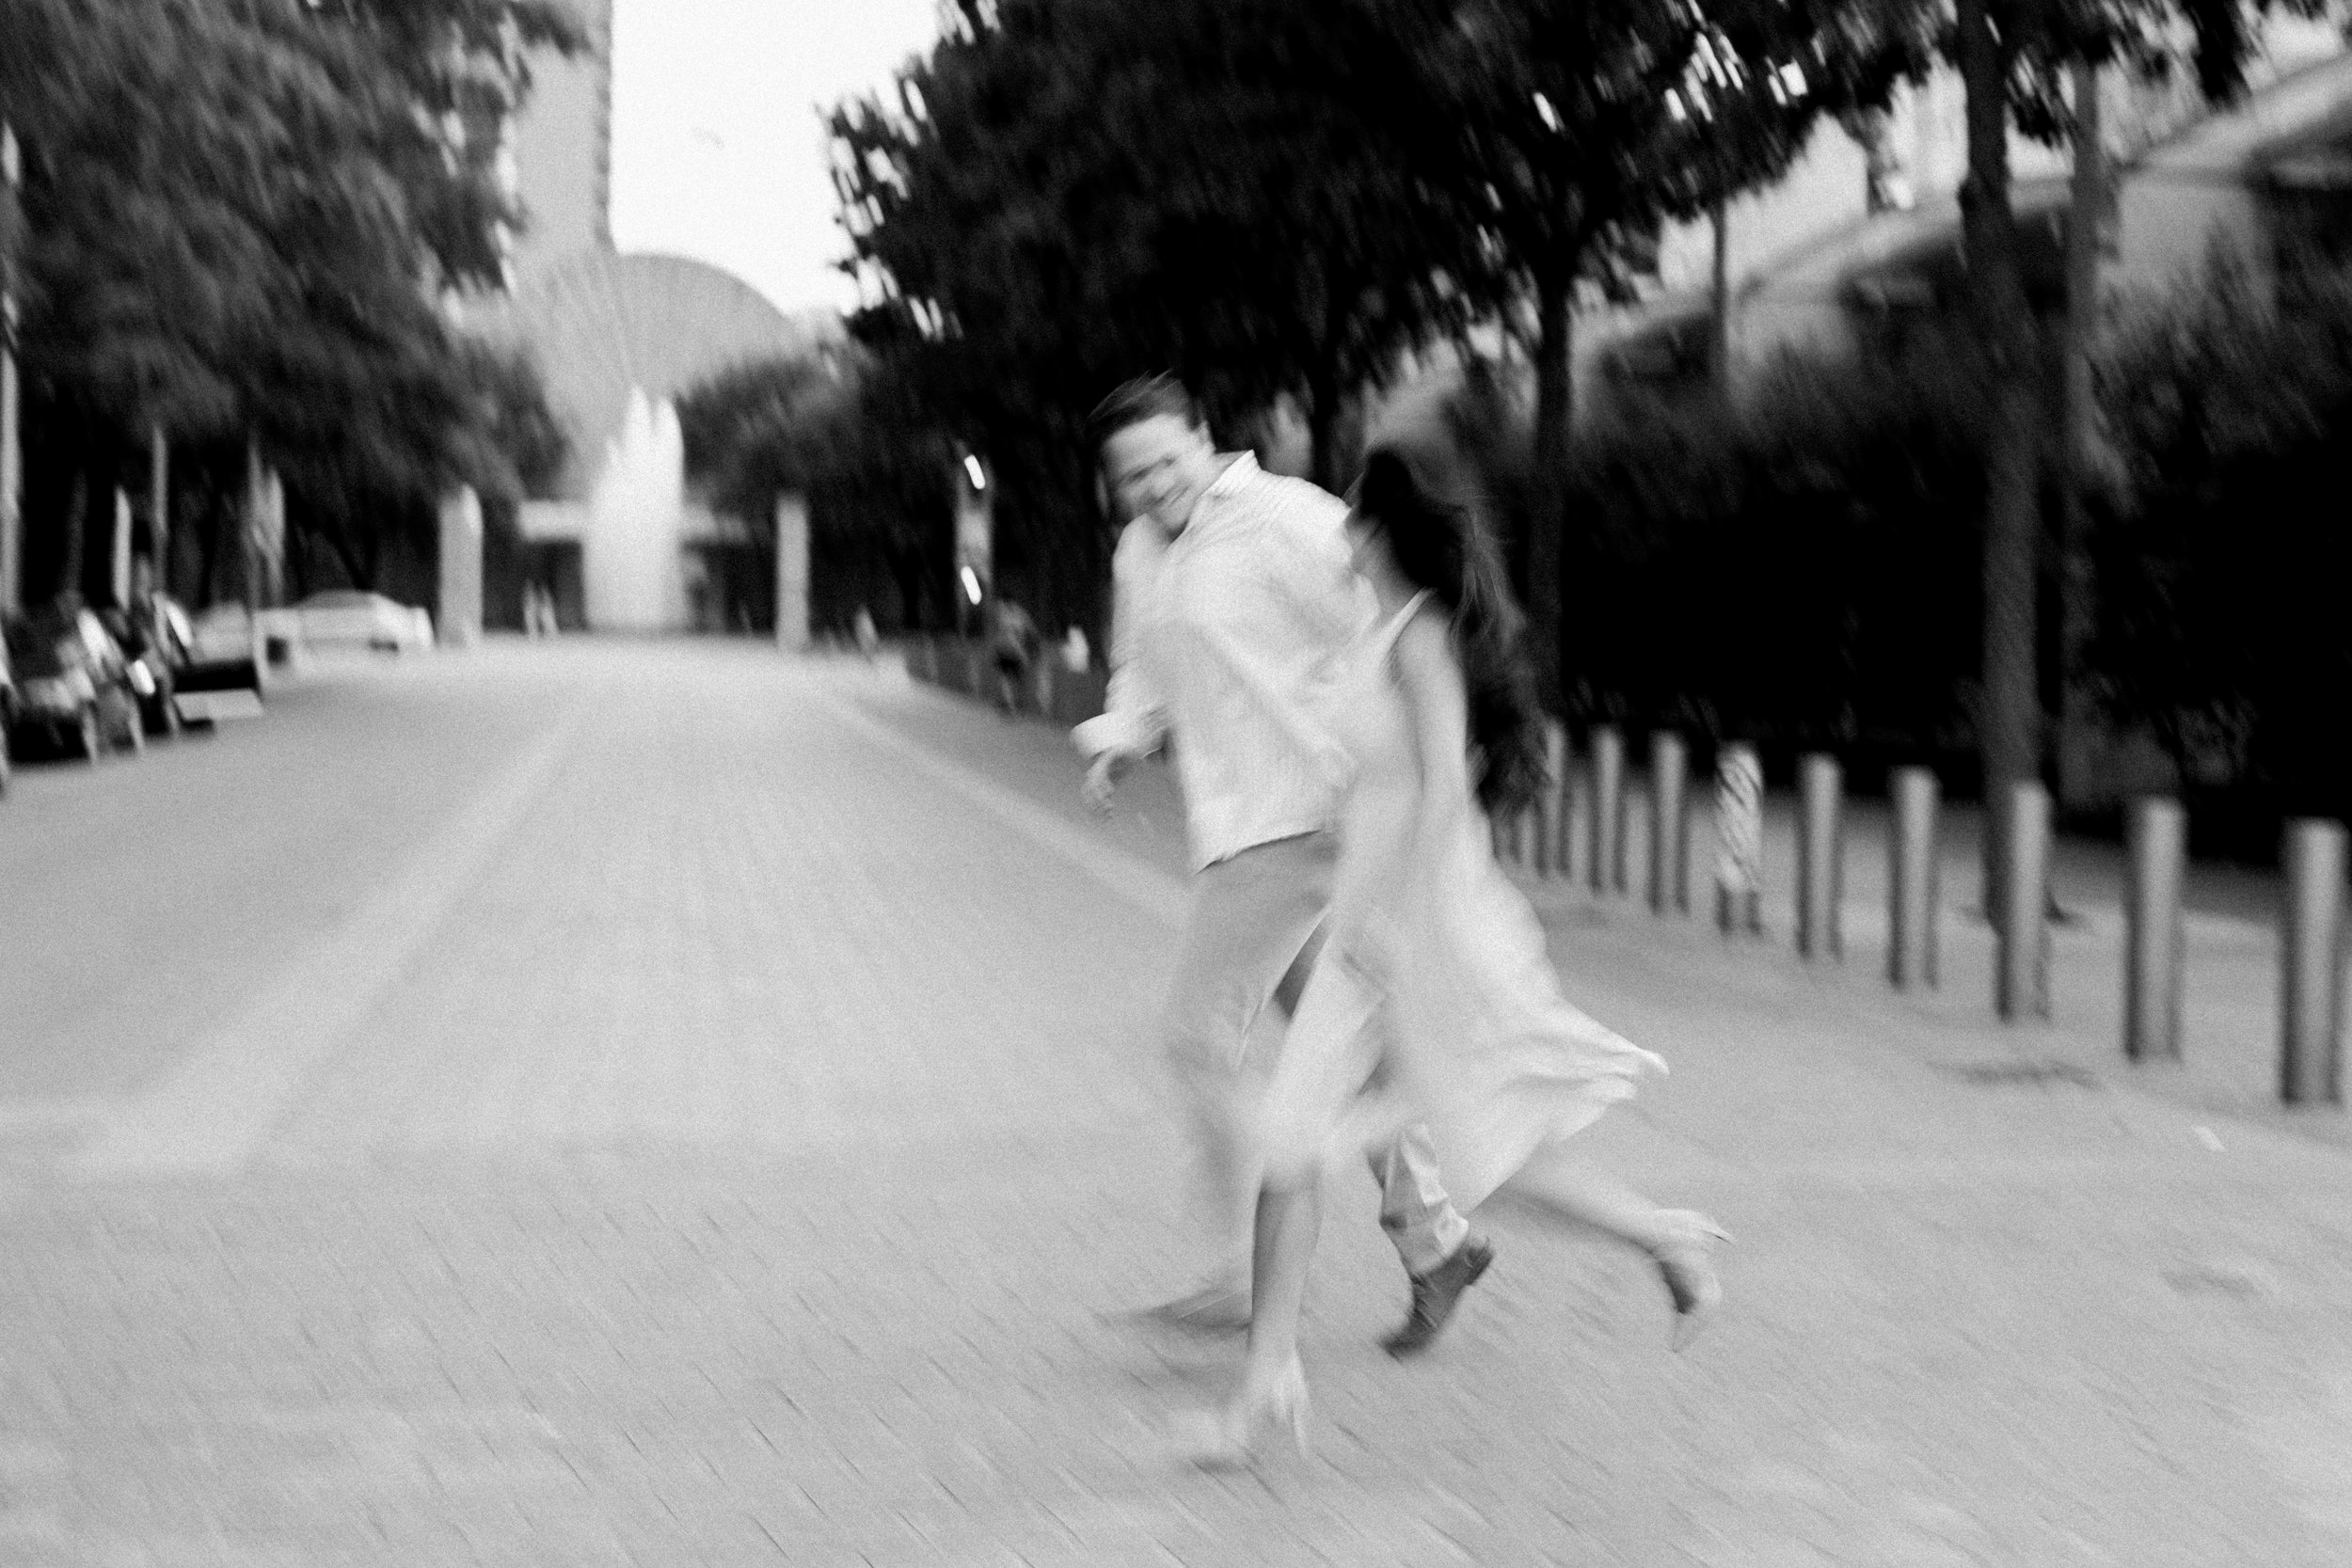 Couple running across street